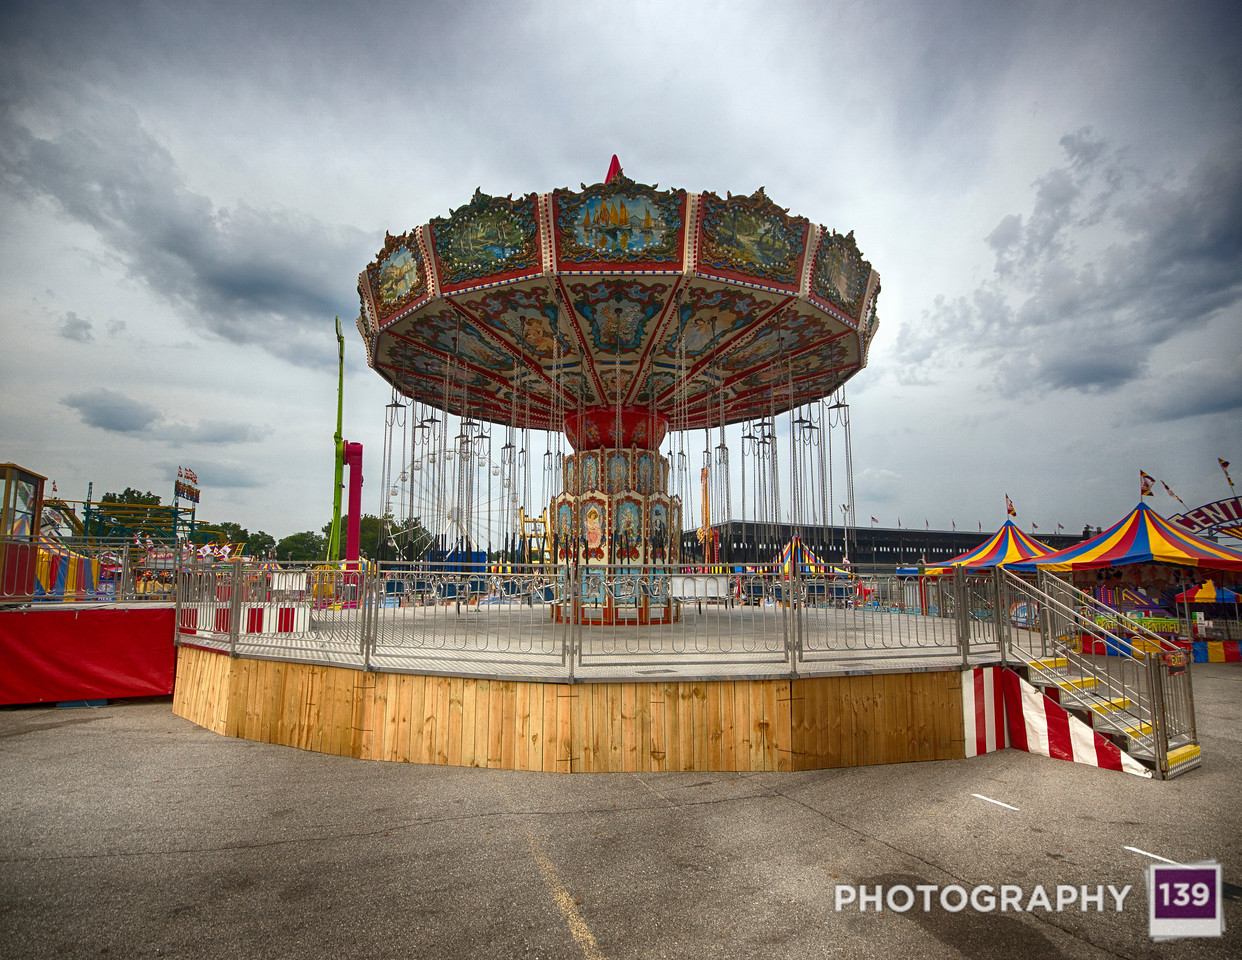 Boone County Fair Photo Contest Entry